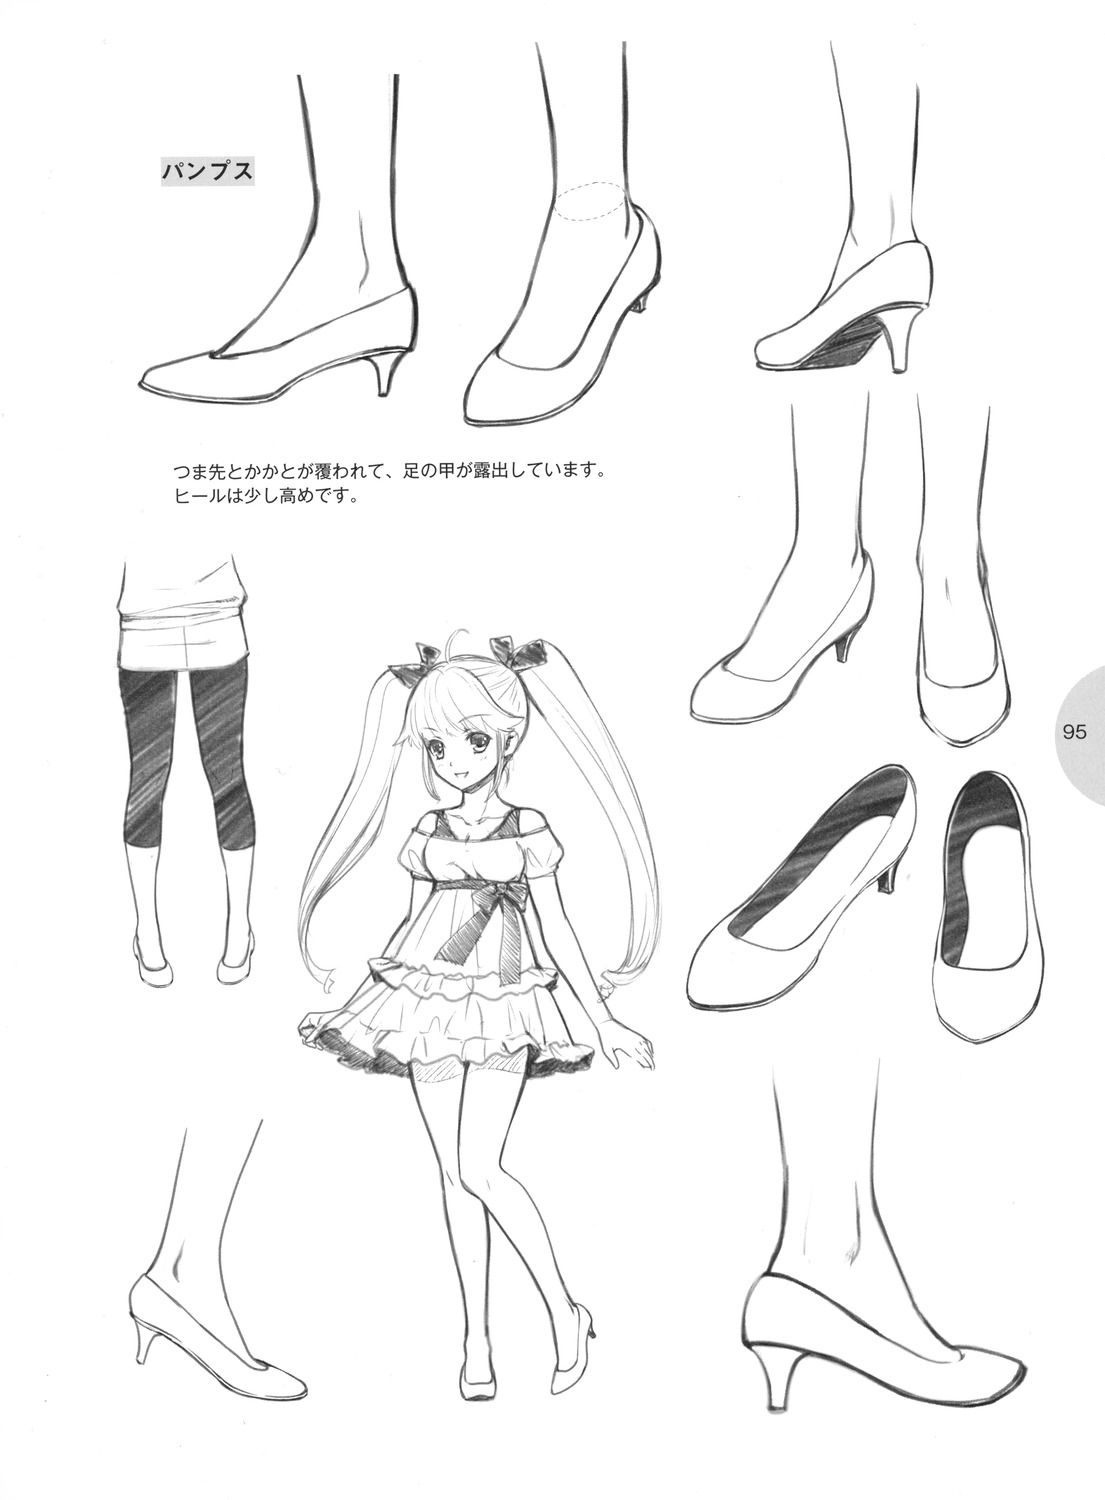 Ƀ�屋  Knickerweasels: Drawing Feet And Shoes From œ�  Character